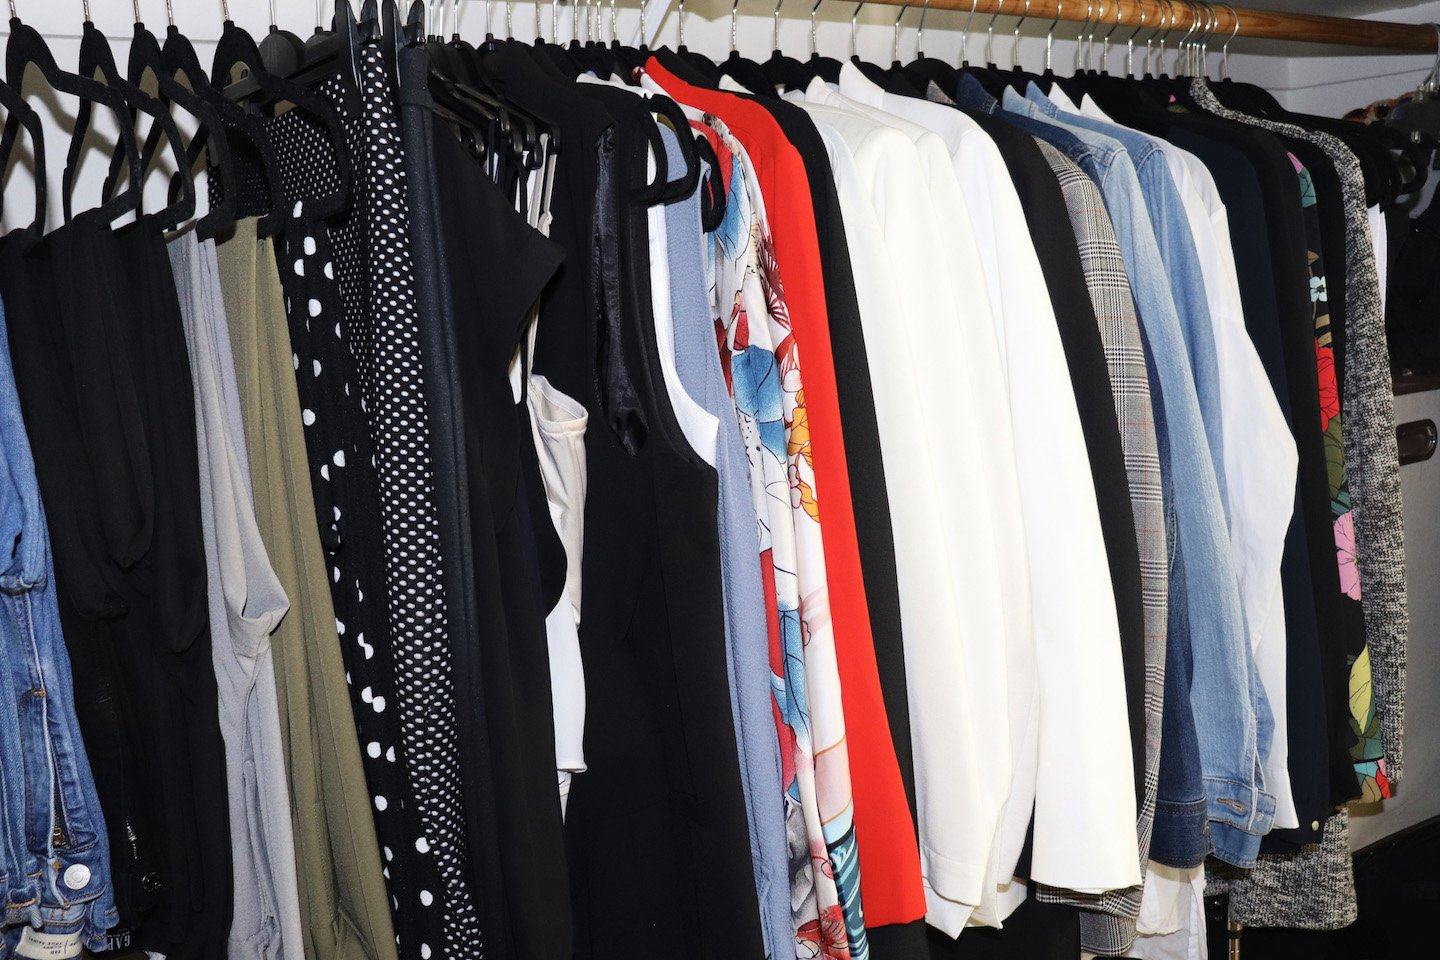 How To Purge & Organize Your Small NYC Closet by clothing type